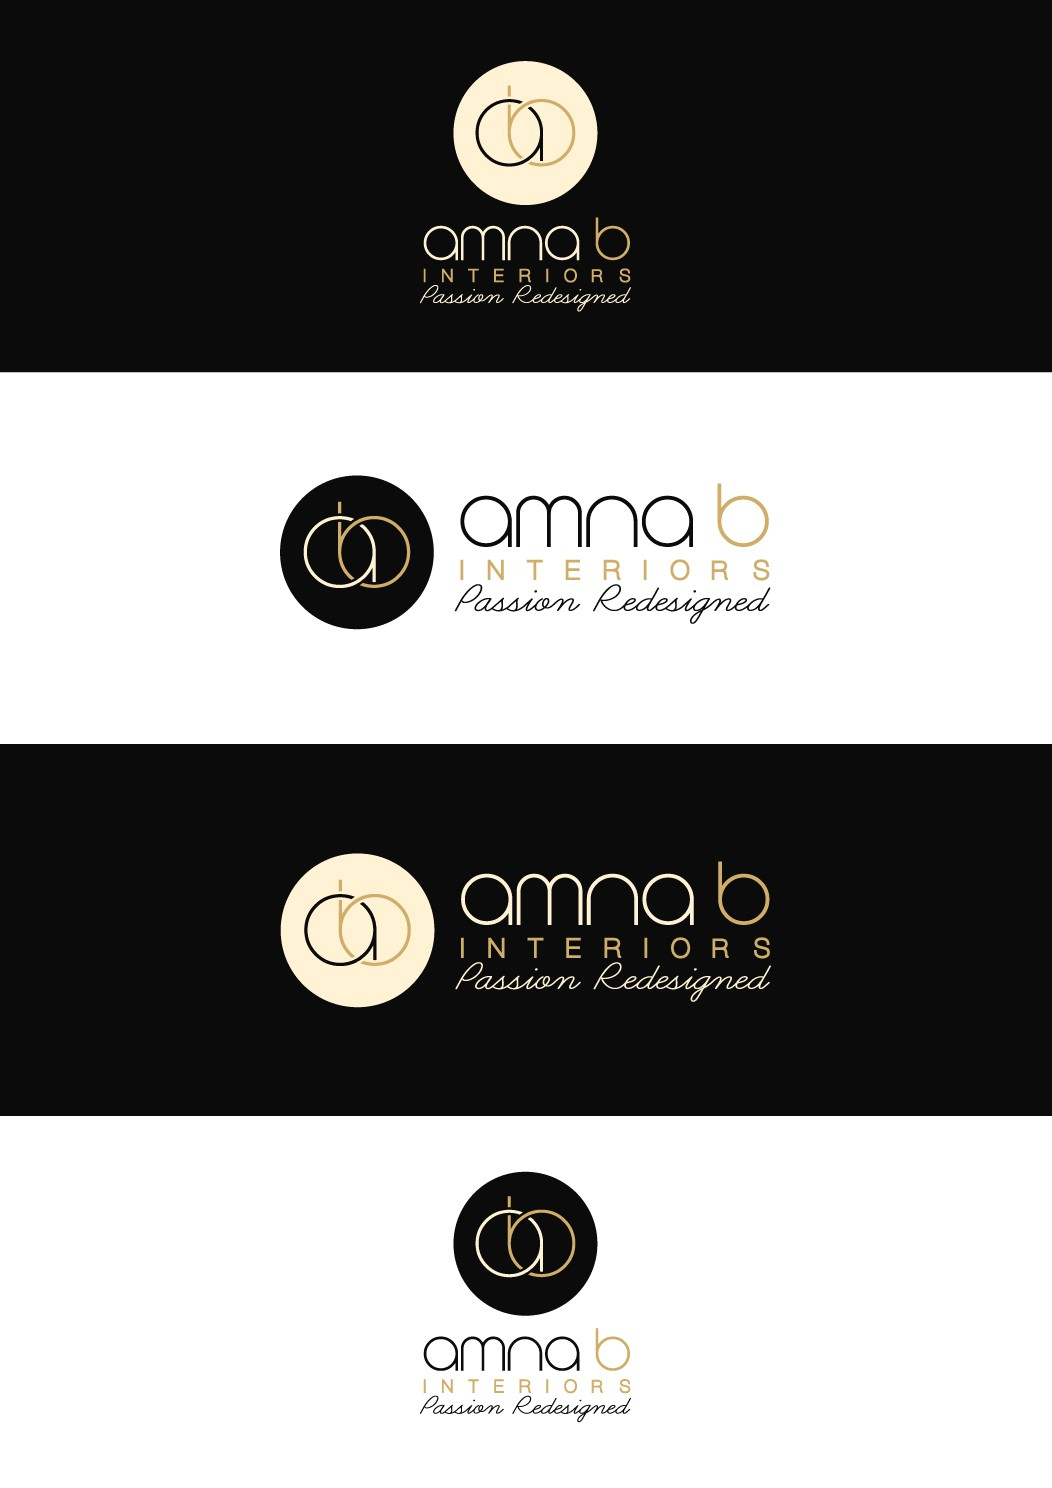 New logo wanted for Amna B Interiors